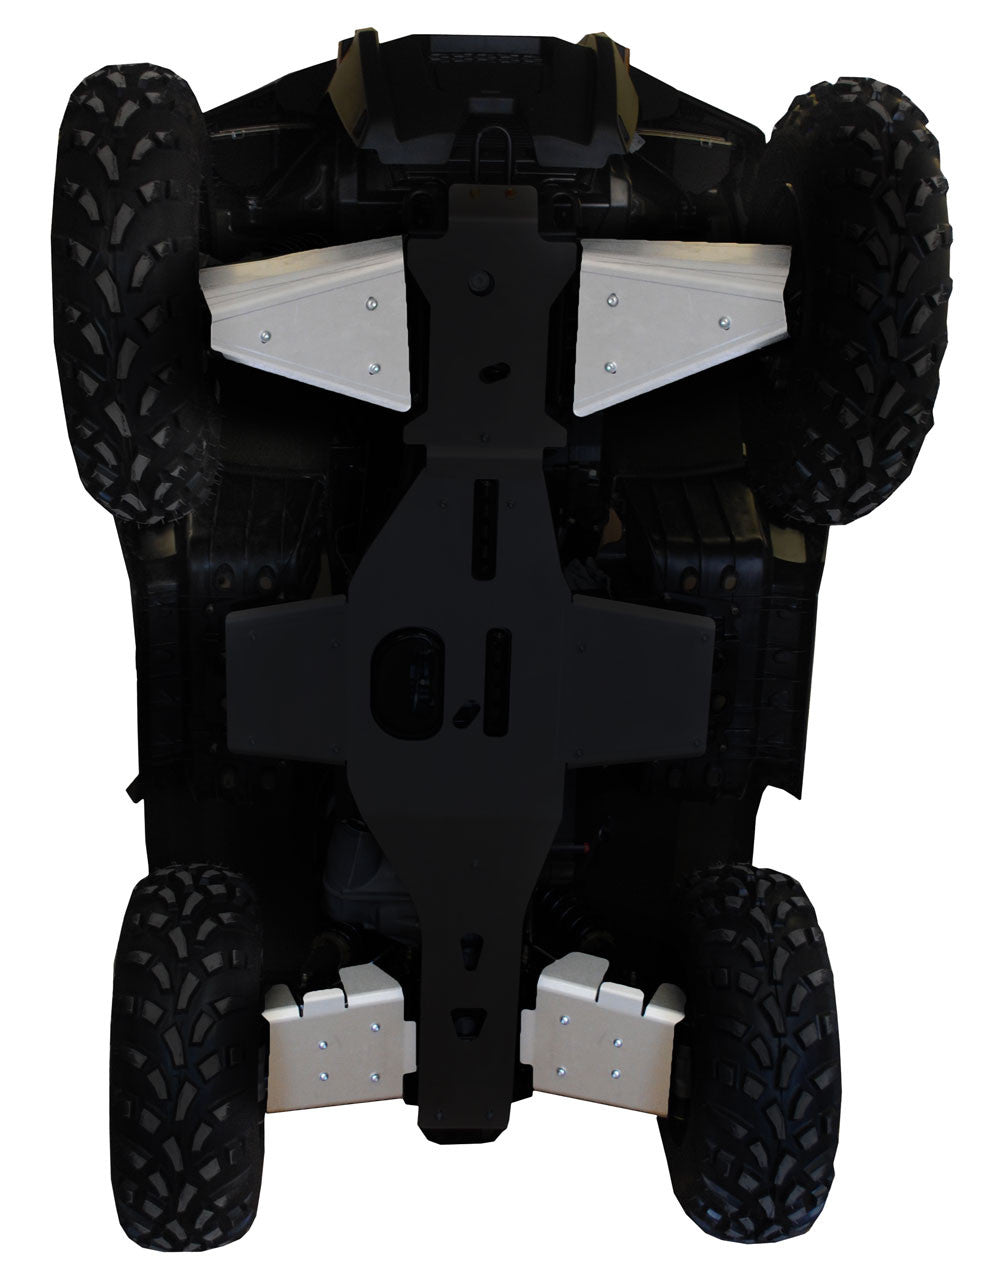 4-Piece A-Arm & CV Boot Guards, Polaris Sportsman 400